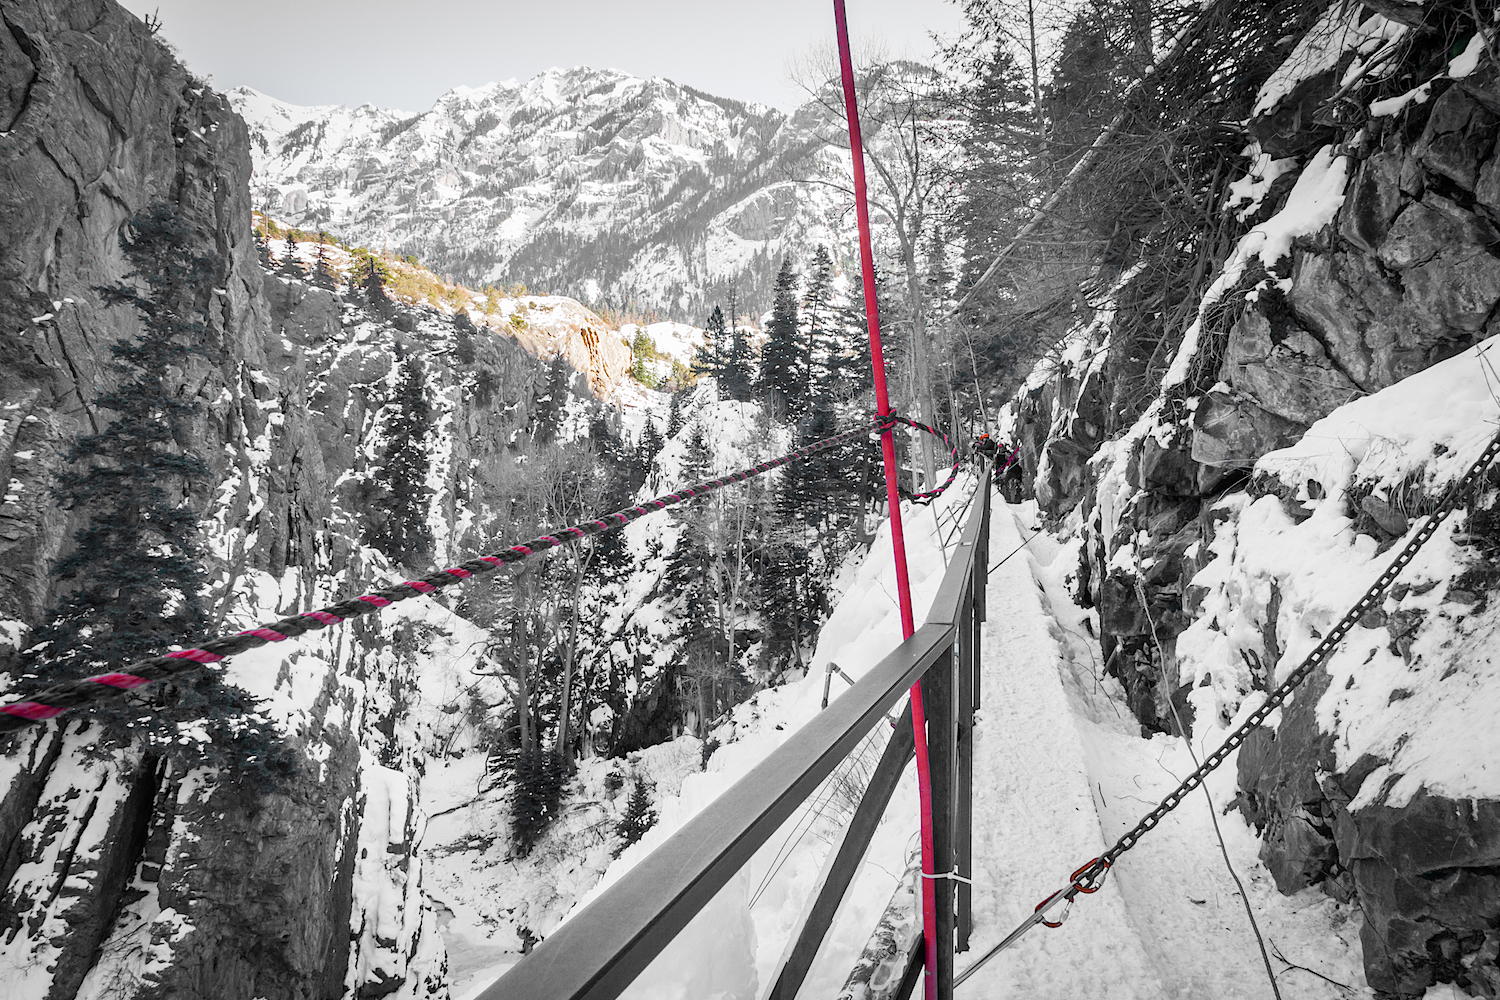 Ouray Ice Park, Image # 4550